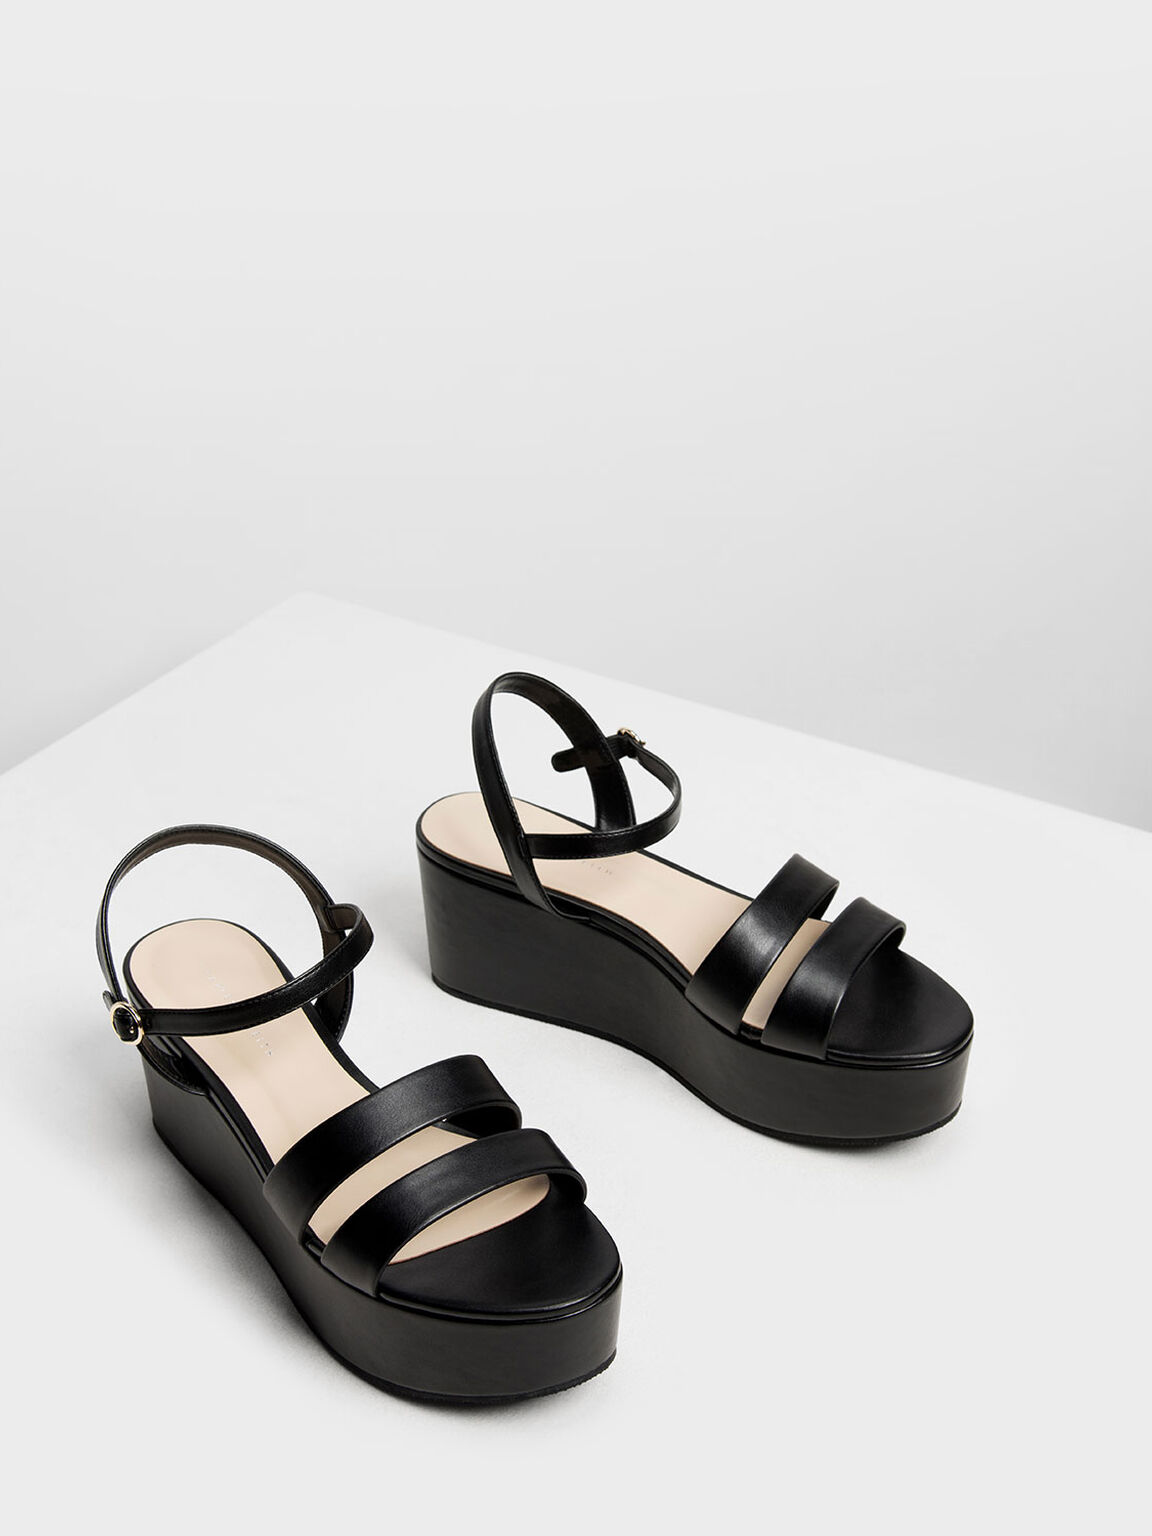 Double Strap Flatform Sandals, Black, hi-res